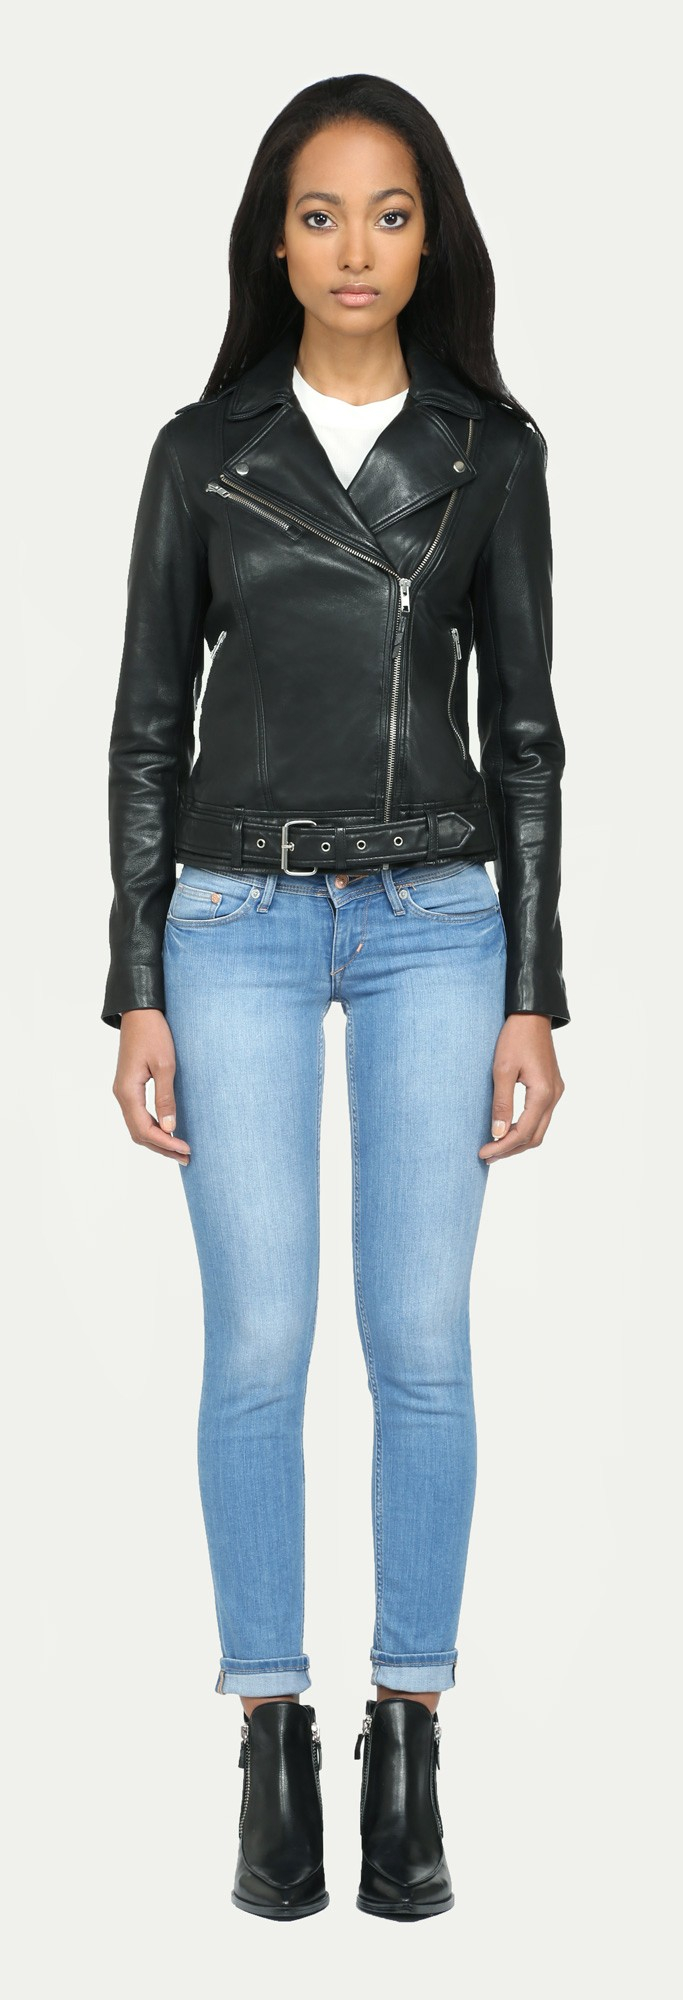 soia kyo kenley black biker leather jacket with buckle